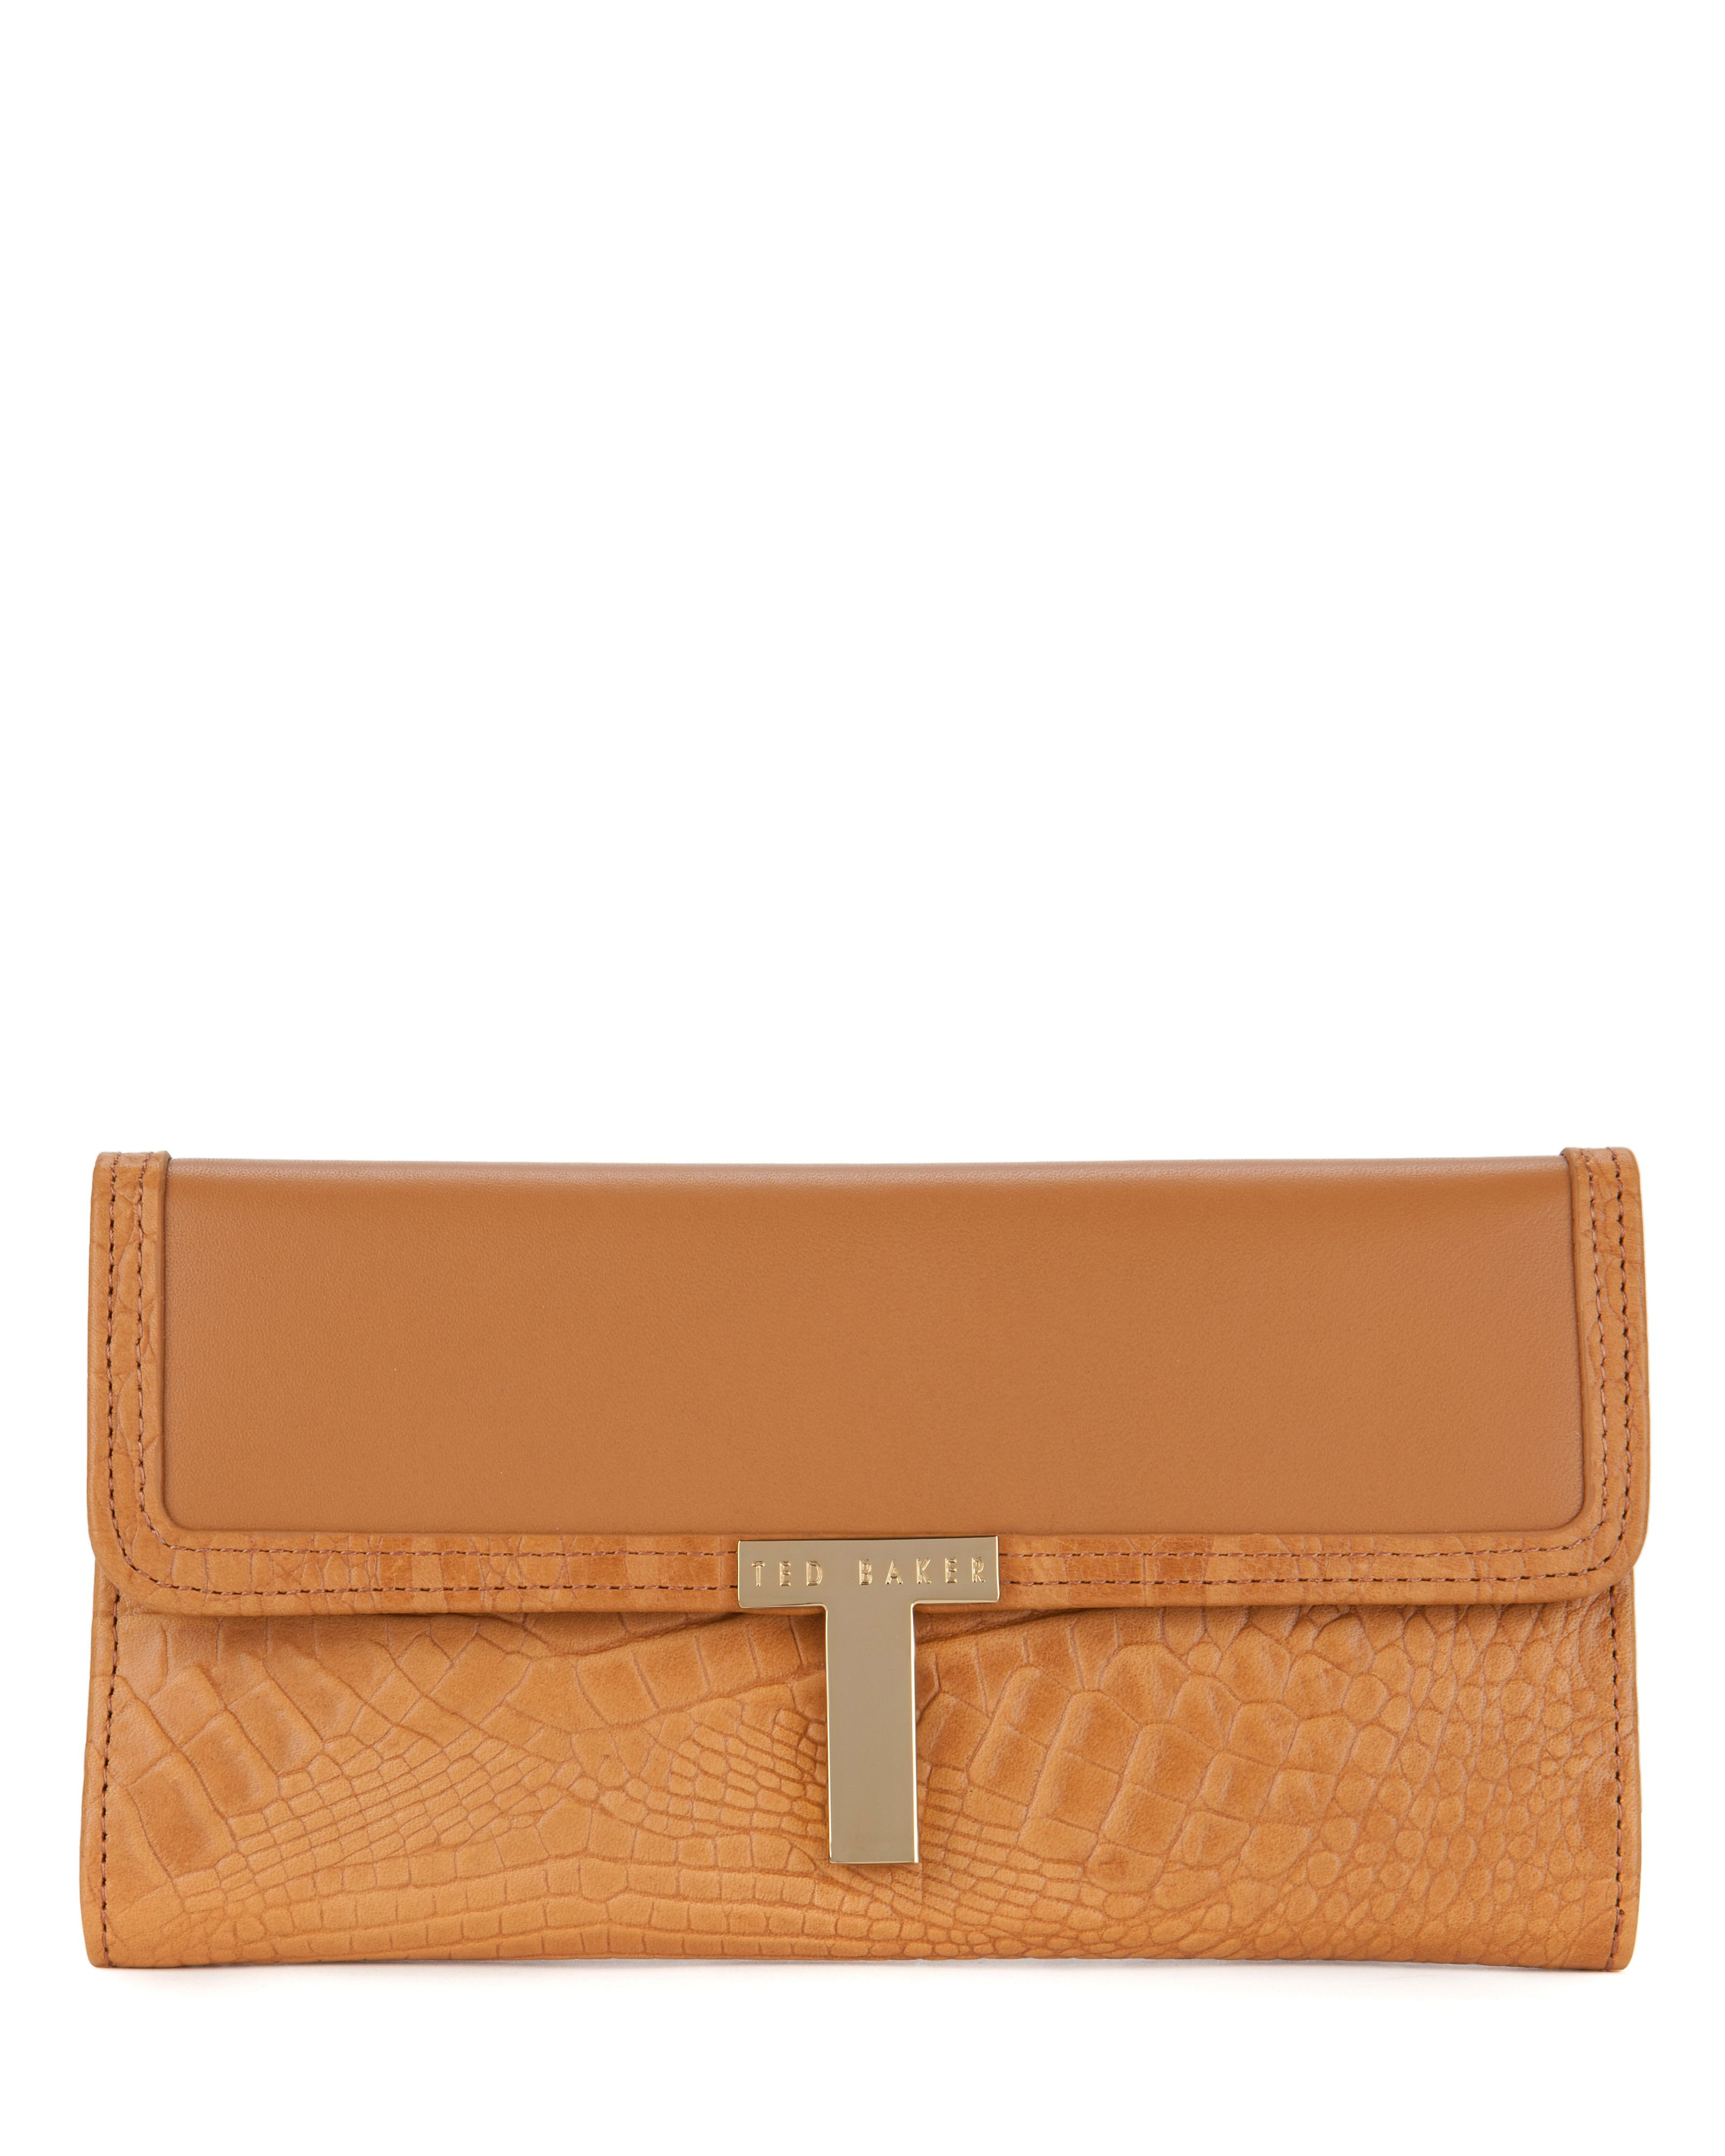 Jantier leather purse